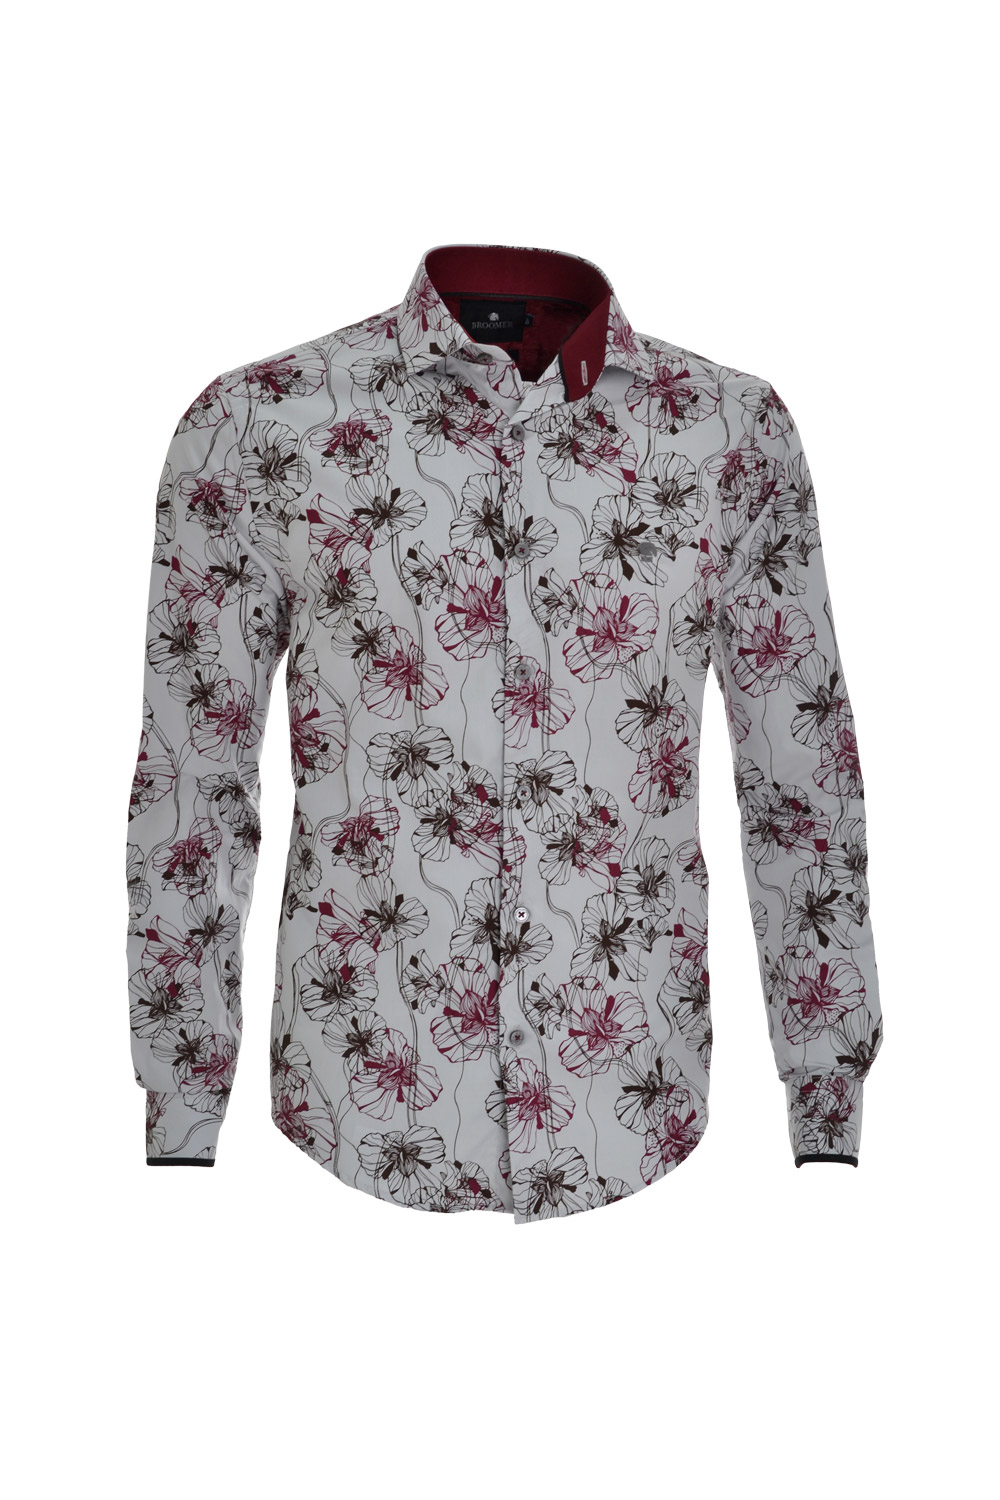 CAMISA ML FASHION SUPER SLIM ALGODAO FIO TINTO FLORAL GELO